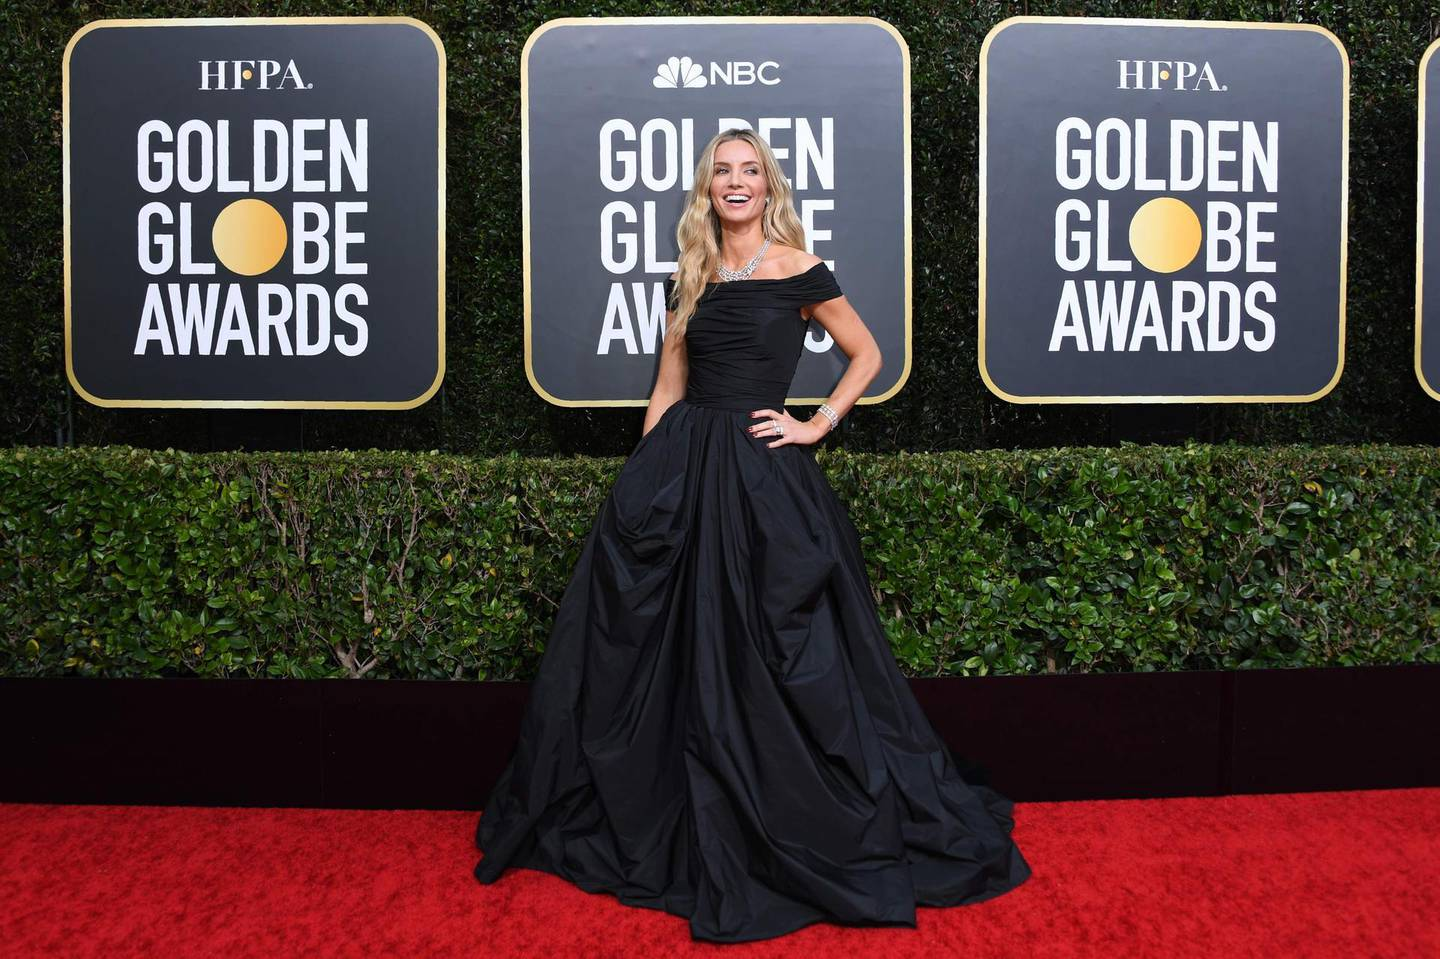 Actress Annabelle Wallis arrives for the 77th annual Golden Globe Awards on January 5, 2020, at The Beverly Hilton hotel in Beverly Hills, California.  / AFP / VALERIE MACON